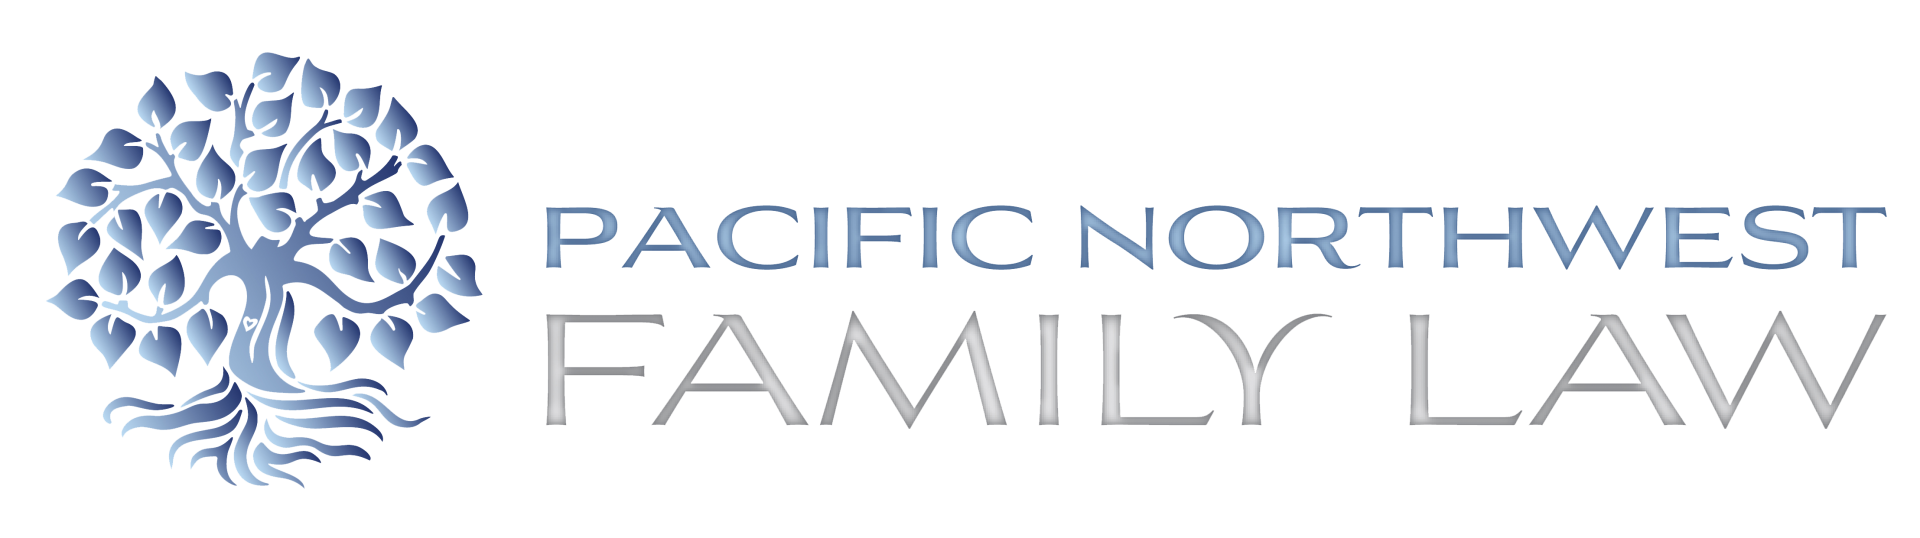 Pacific Northwest Family Law (Spokane), a Top Divorce Attorney in Spokane Announces New Services for Their Spokane Clients